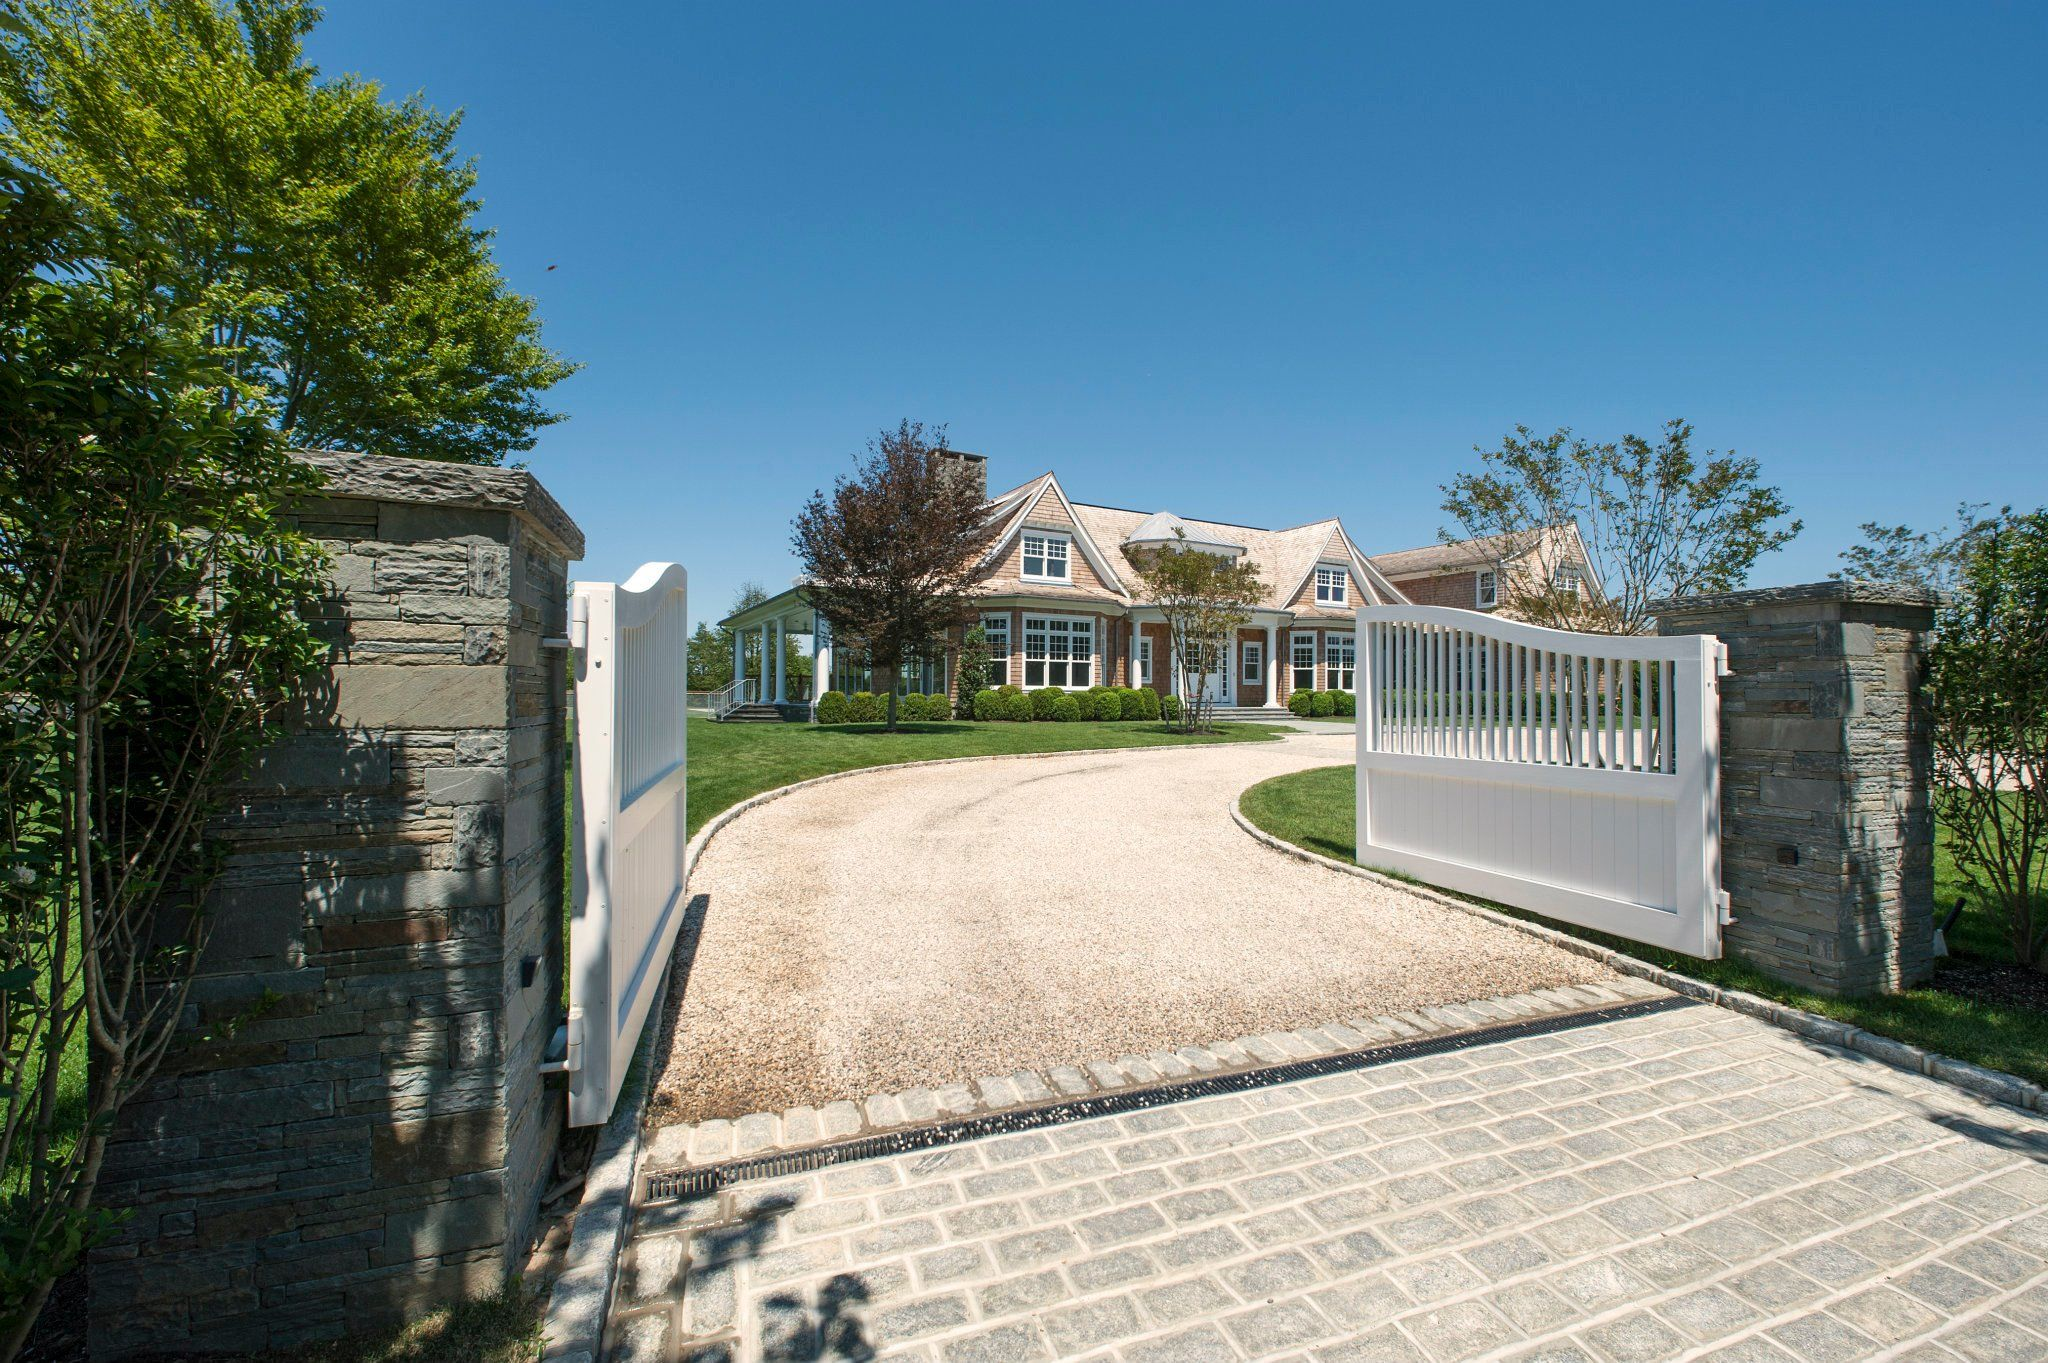 CHIC COASTAL LIVING: 10 BEST:: Dream Homes in the Hamptons